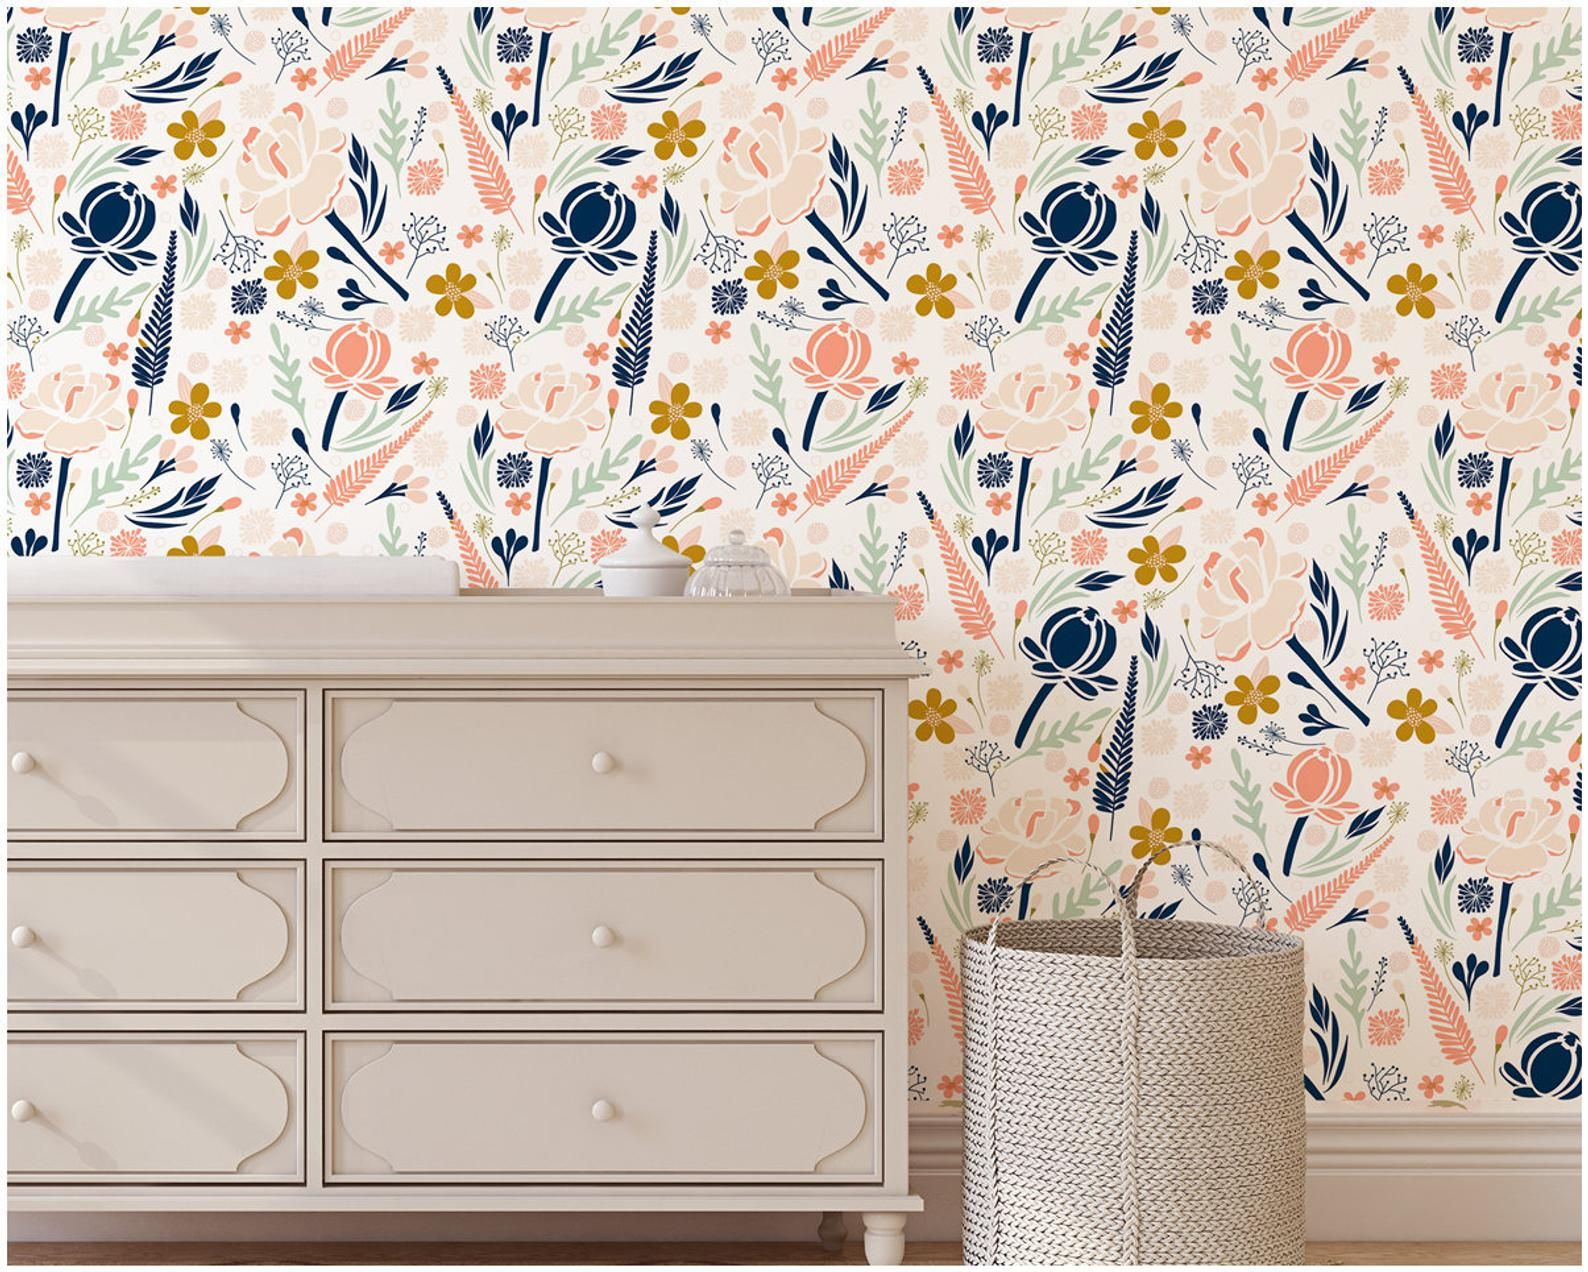 Floral Wallpaper Coral and Navy Gold Removable Wallpaper